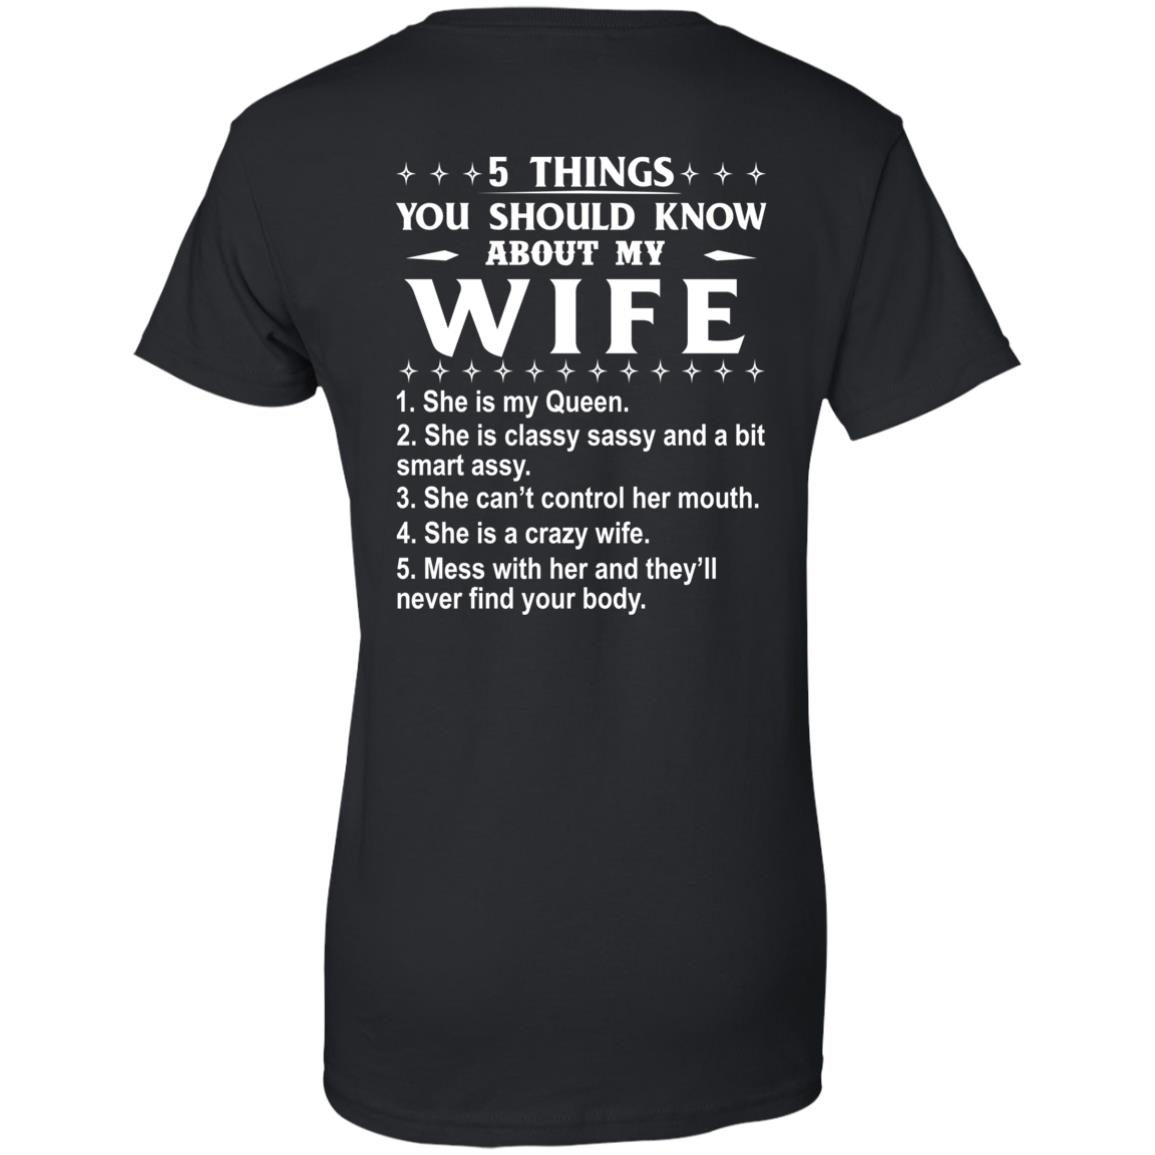 5 Things You Should Know About My wife Shirt & Sweatshirt - image 414